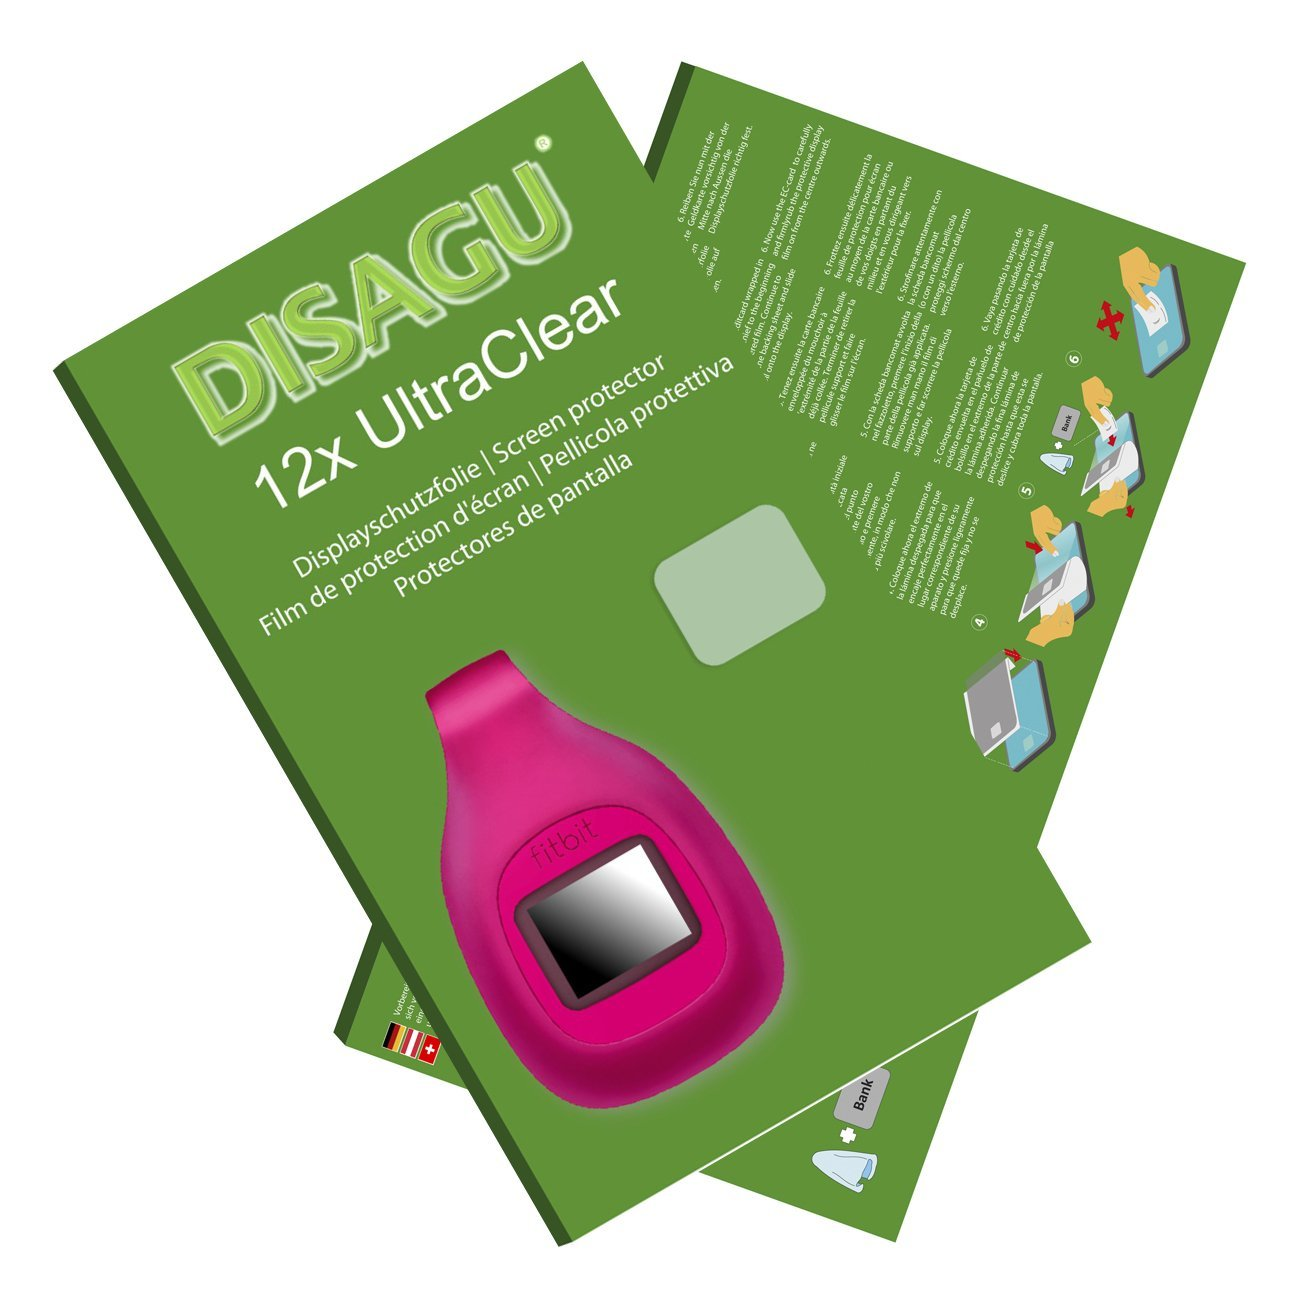 DISAGU 12x Ultra Clear Screen Protector for Fitbit Zip